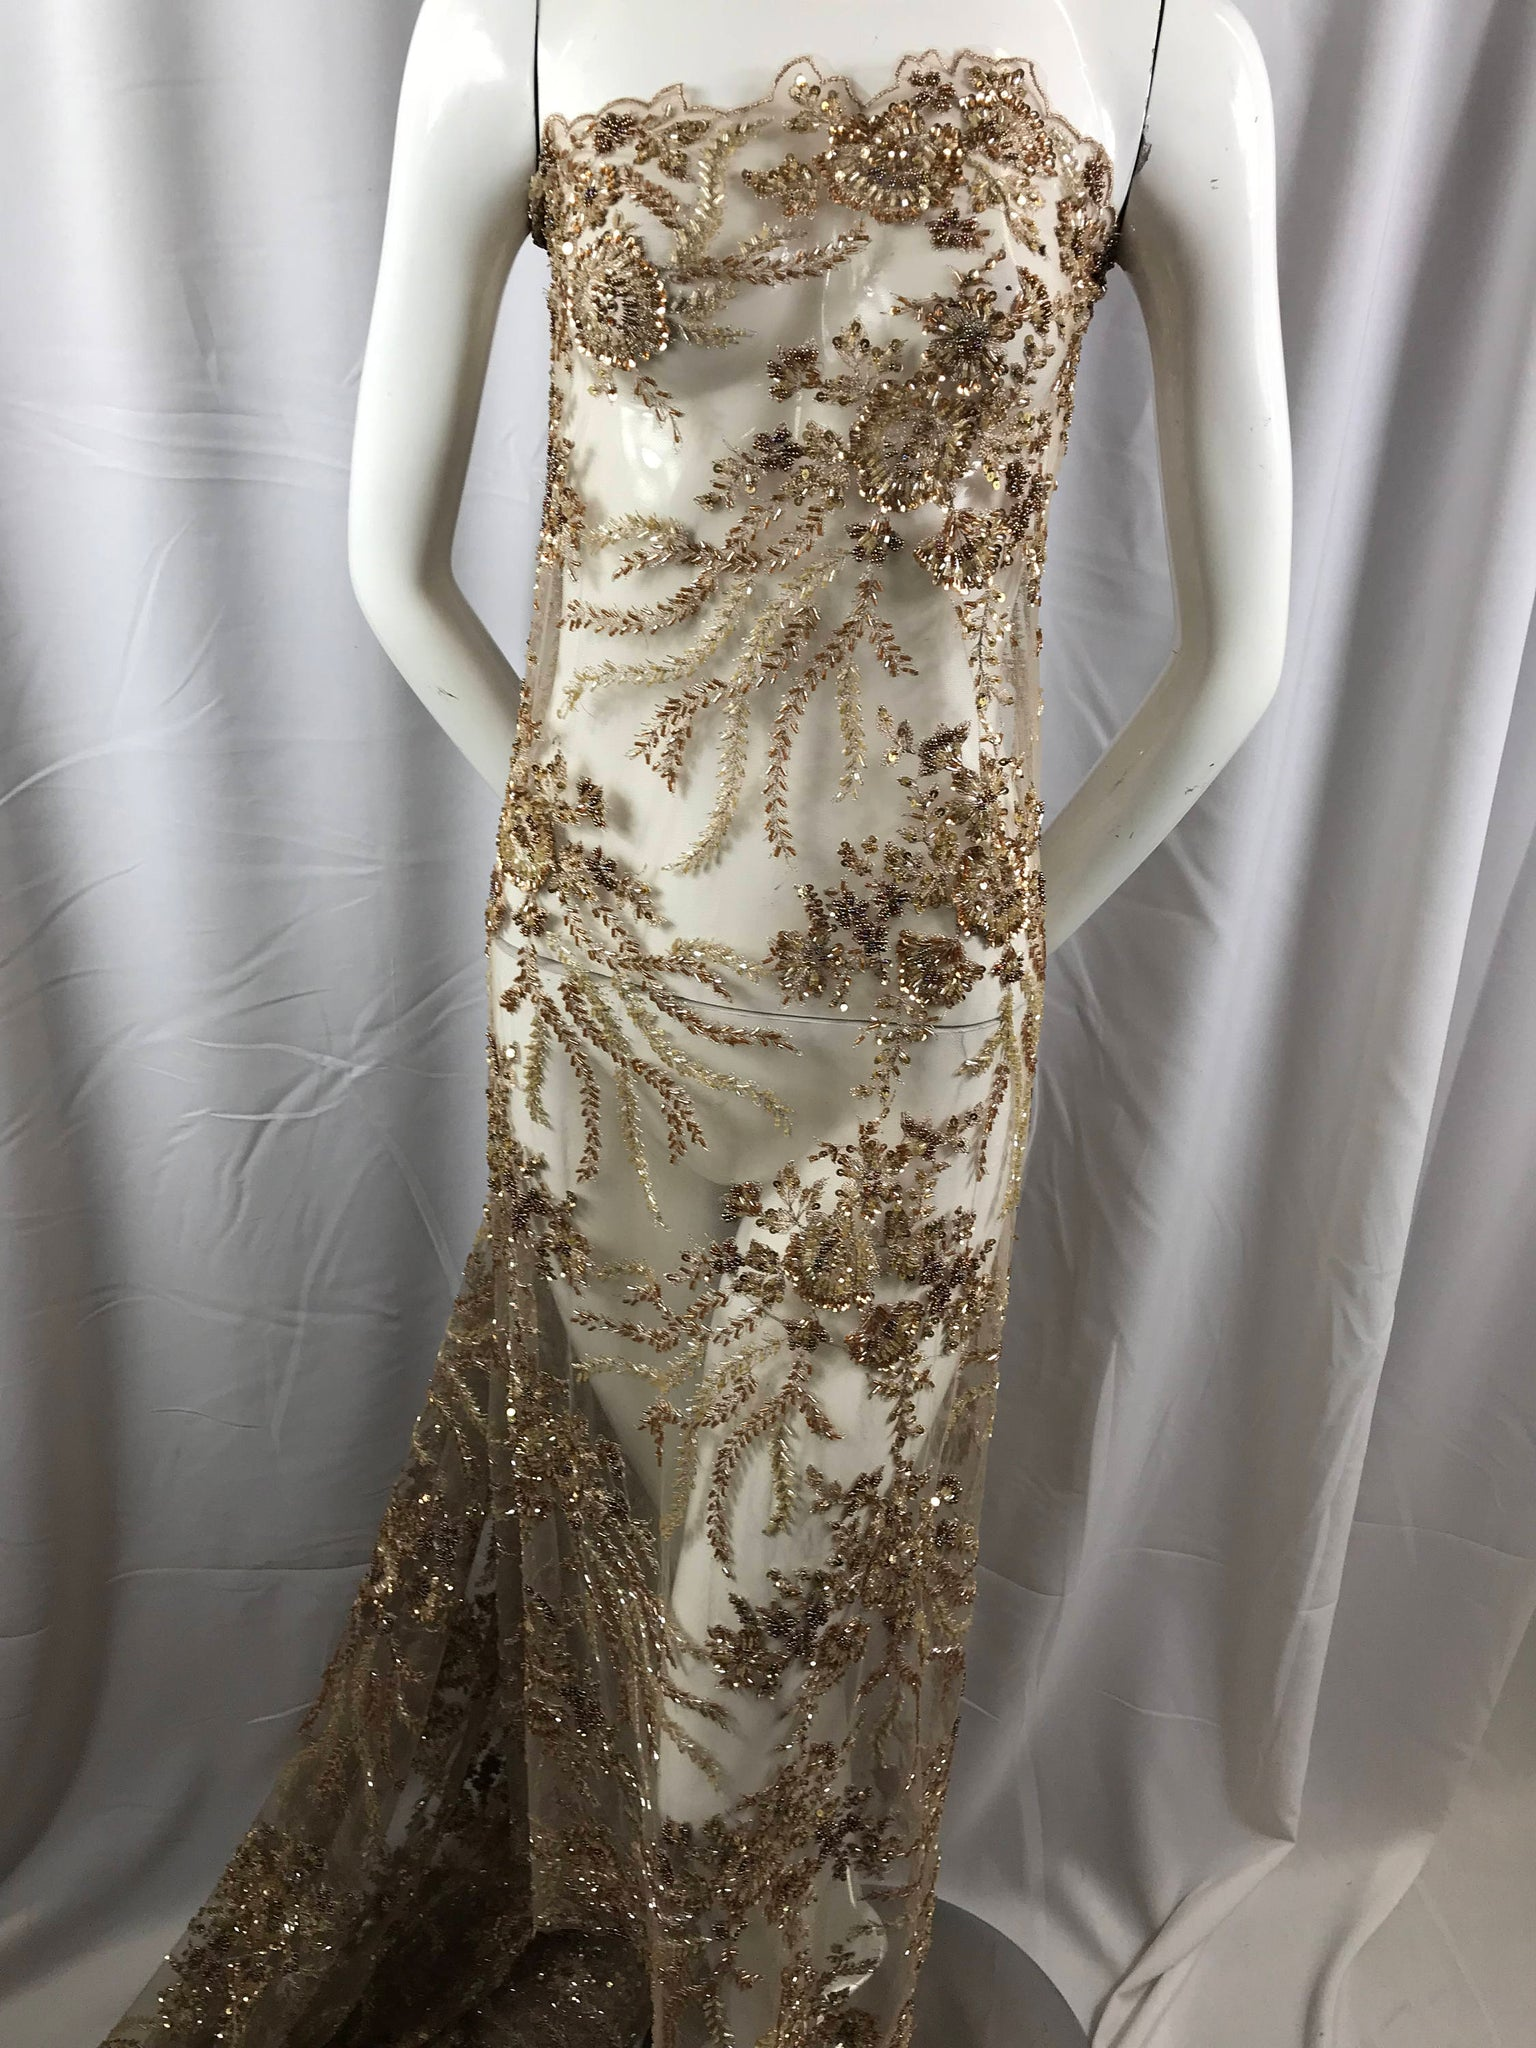 Embroidered Beaded Fabric - Taupe Multi-Color Floral Bridal Lace ...